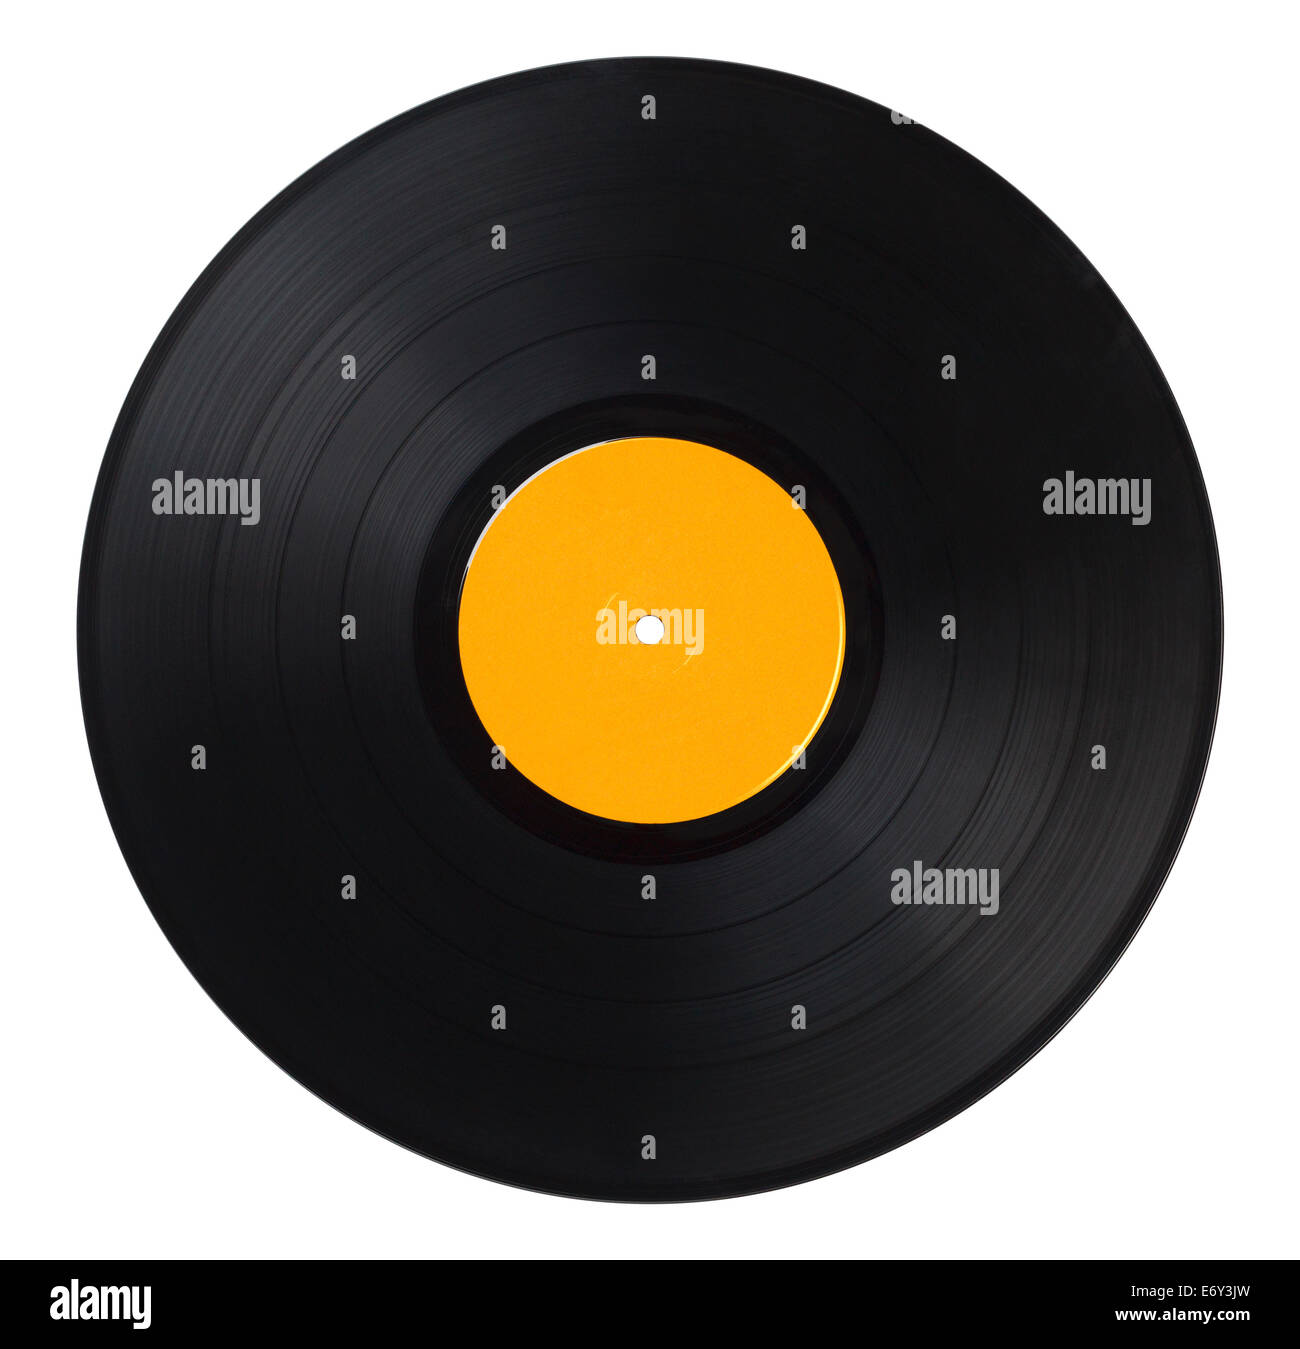 Black Music Record With Yellow Label Isolated on White Background. - Stock Image